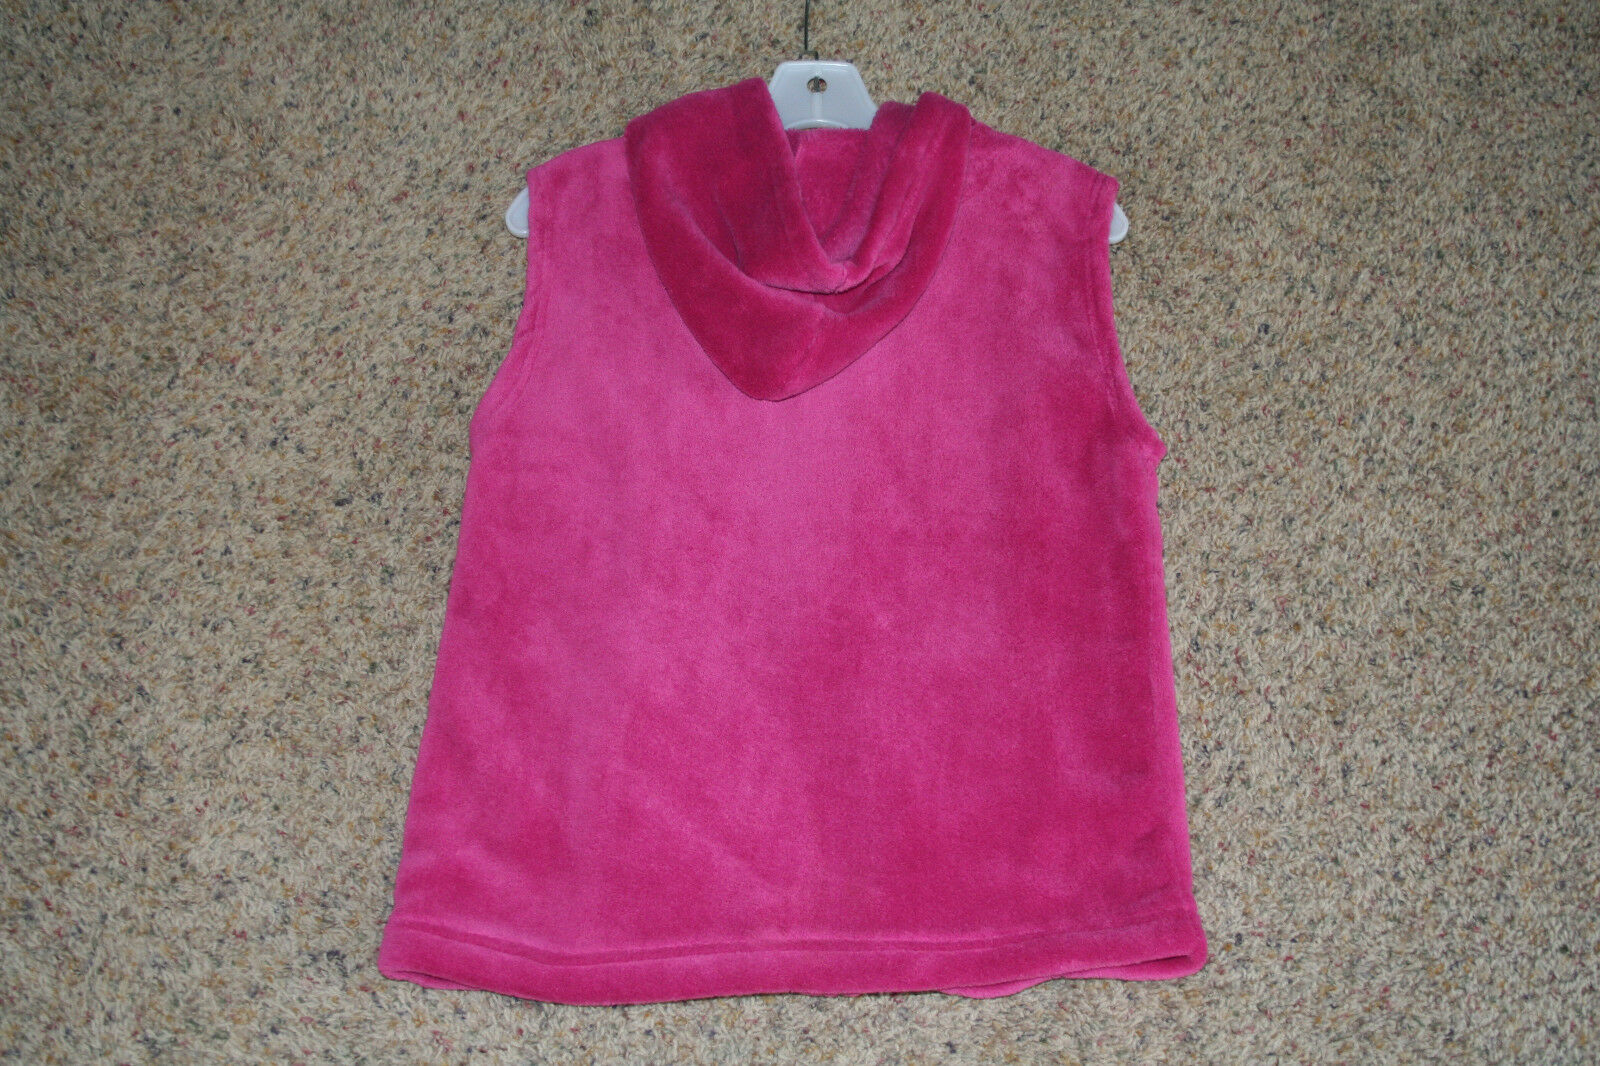 Effeci Women's Hooded Vest Vest Vest Mulberry color Size Medium NEW WITH TAGS 15f2a9